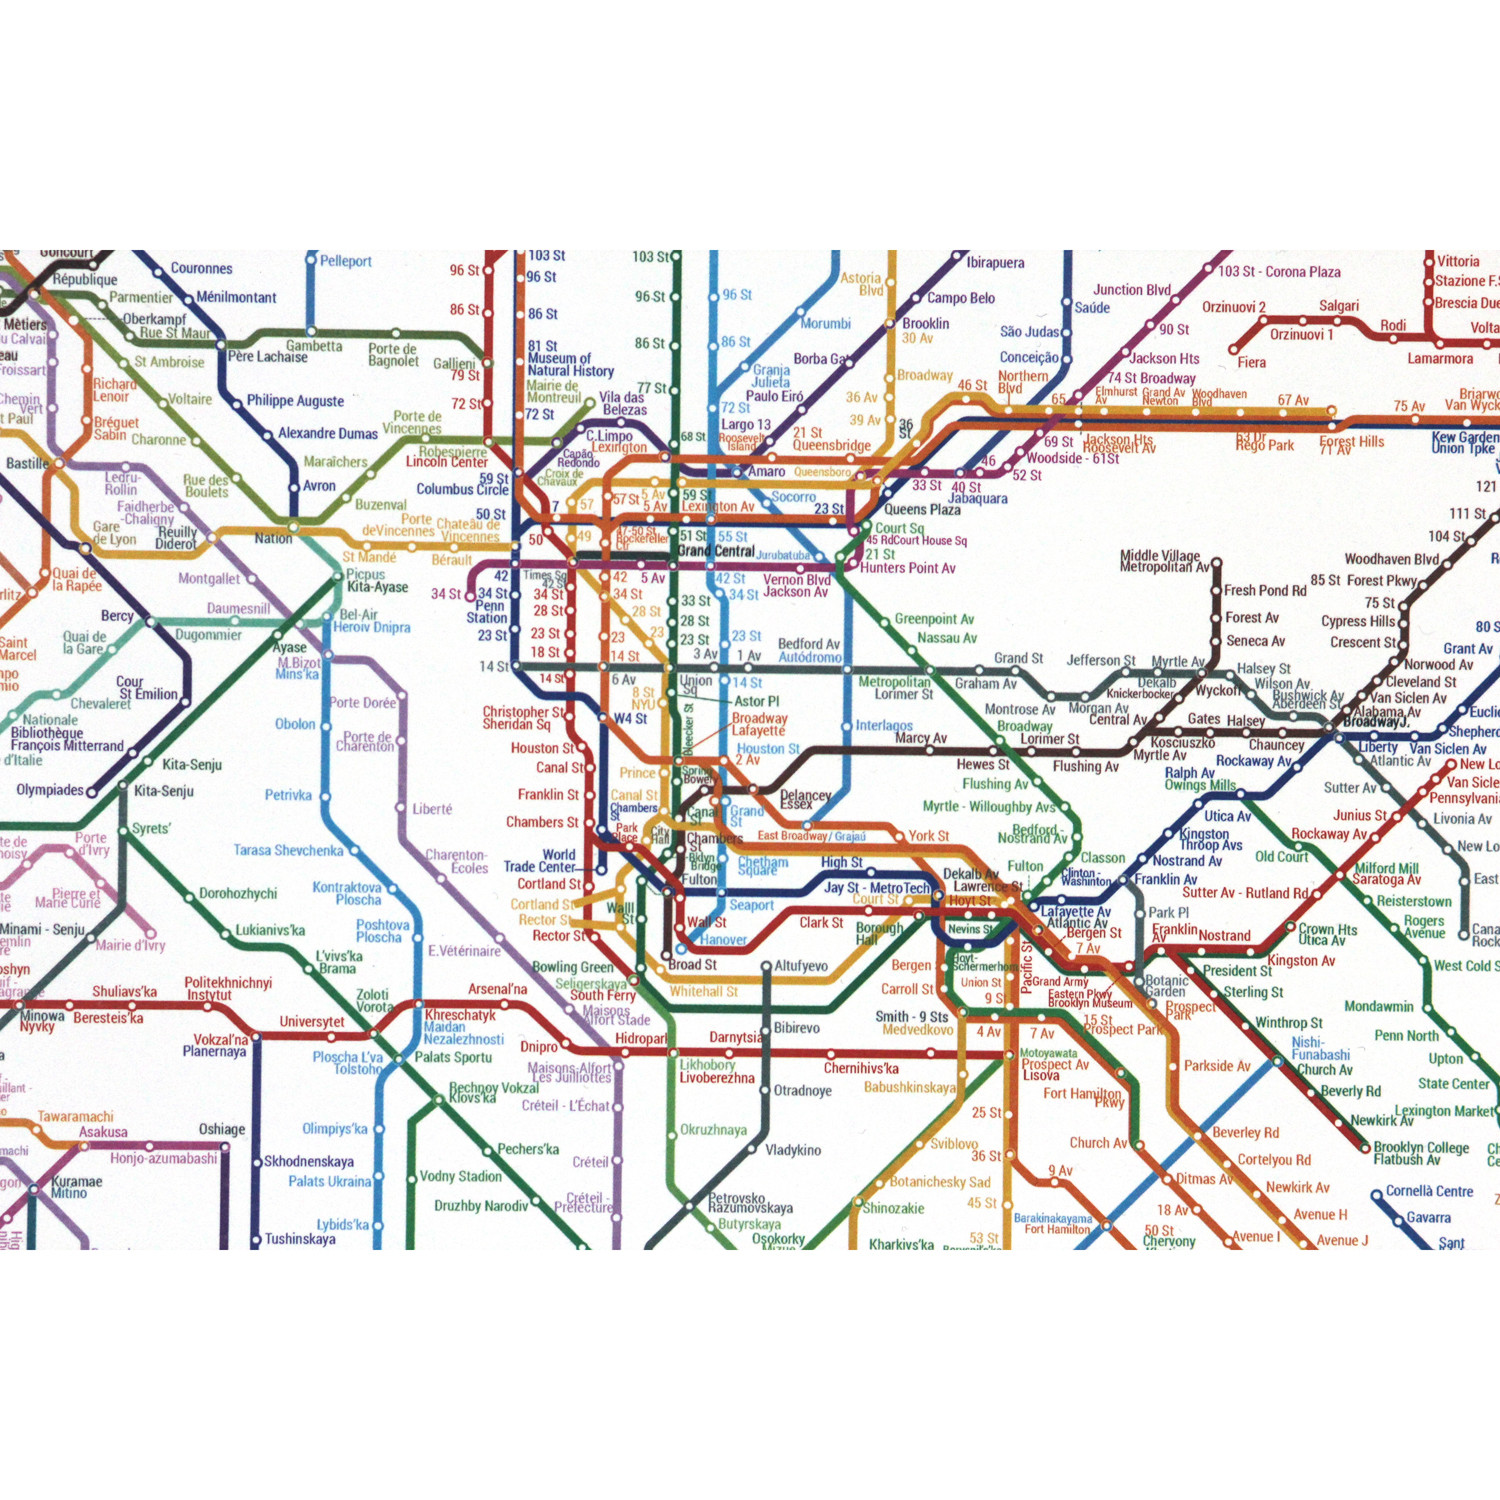 World metro map small artcodedata touch of modern world metro map small gumiabroncs Images